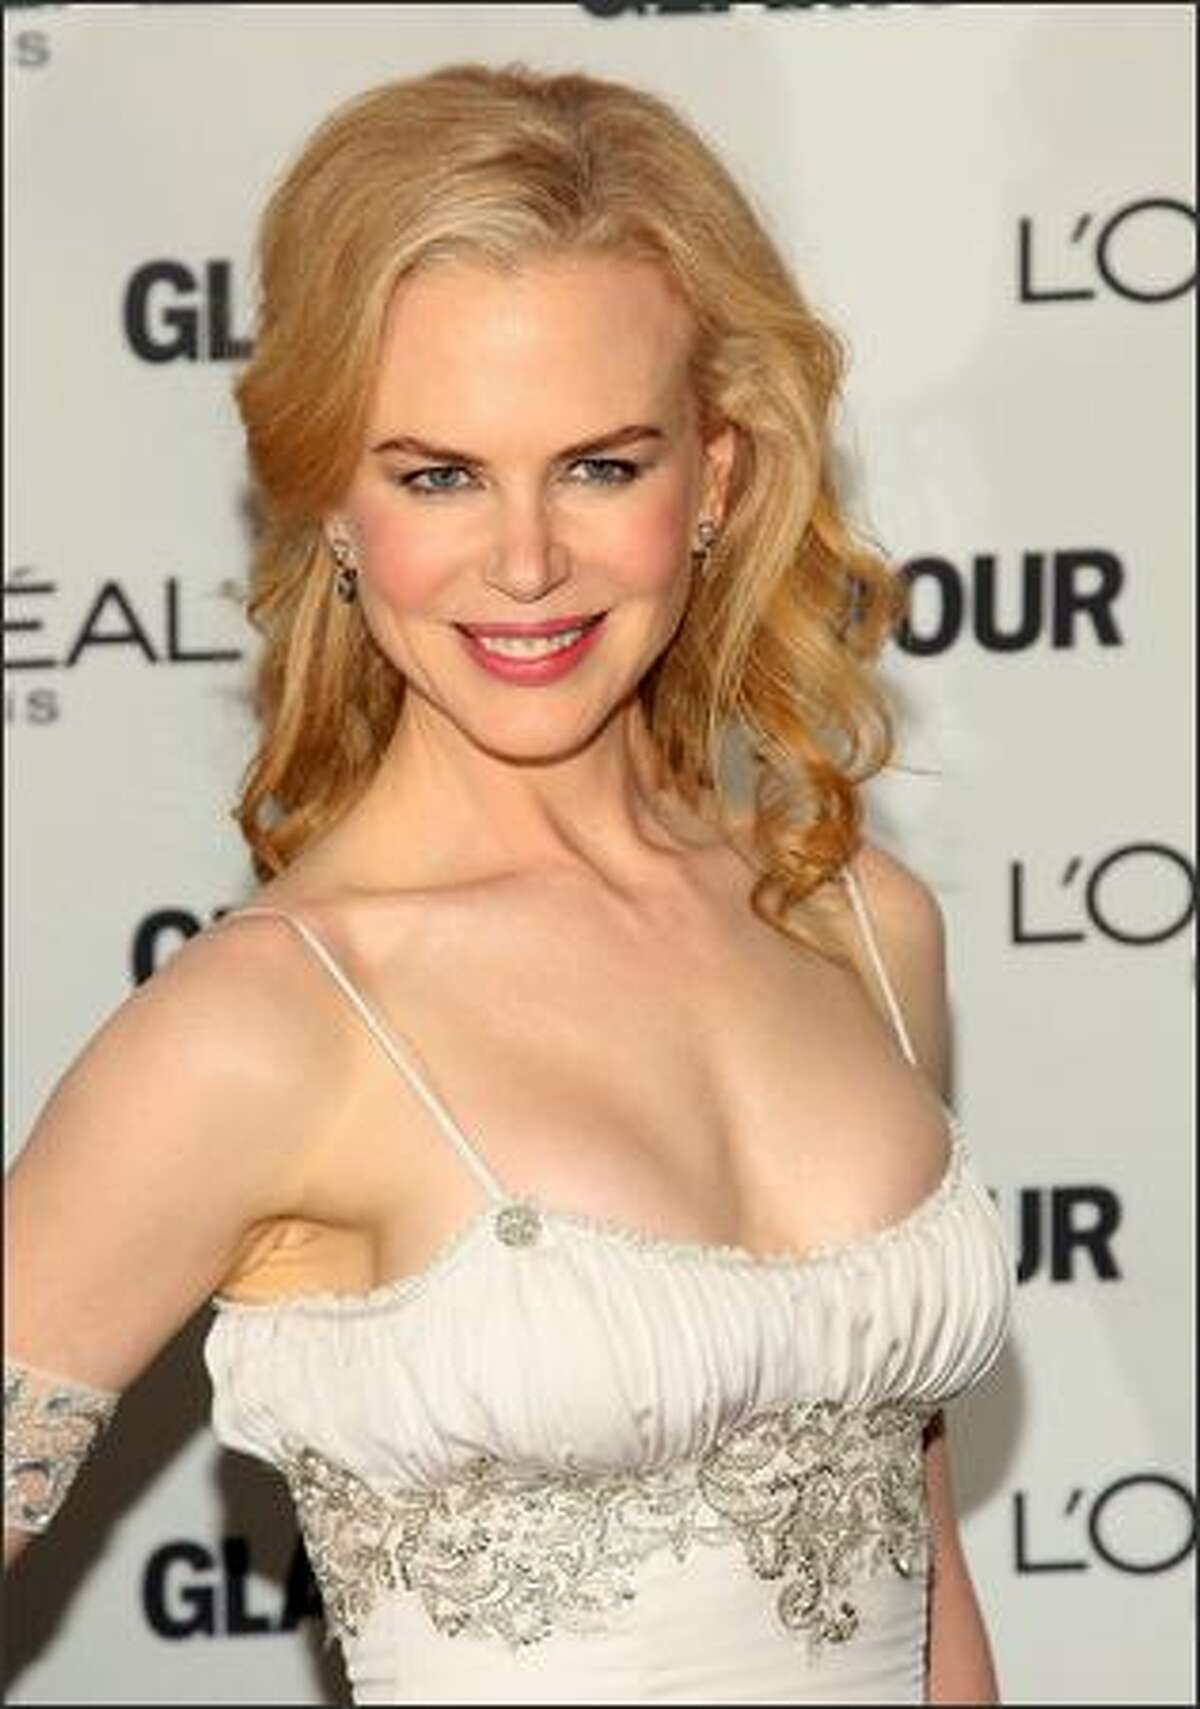 Actress Nicole Kidman attends the 2008 Glamour Women of the Year Awards at Carnegie Hall in New York City.